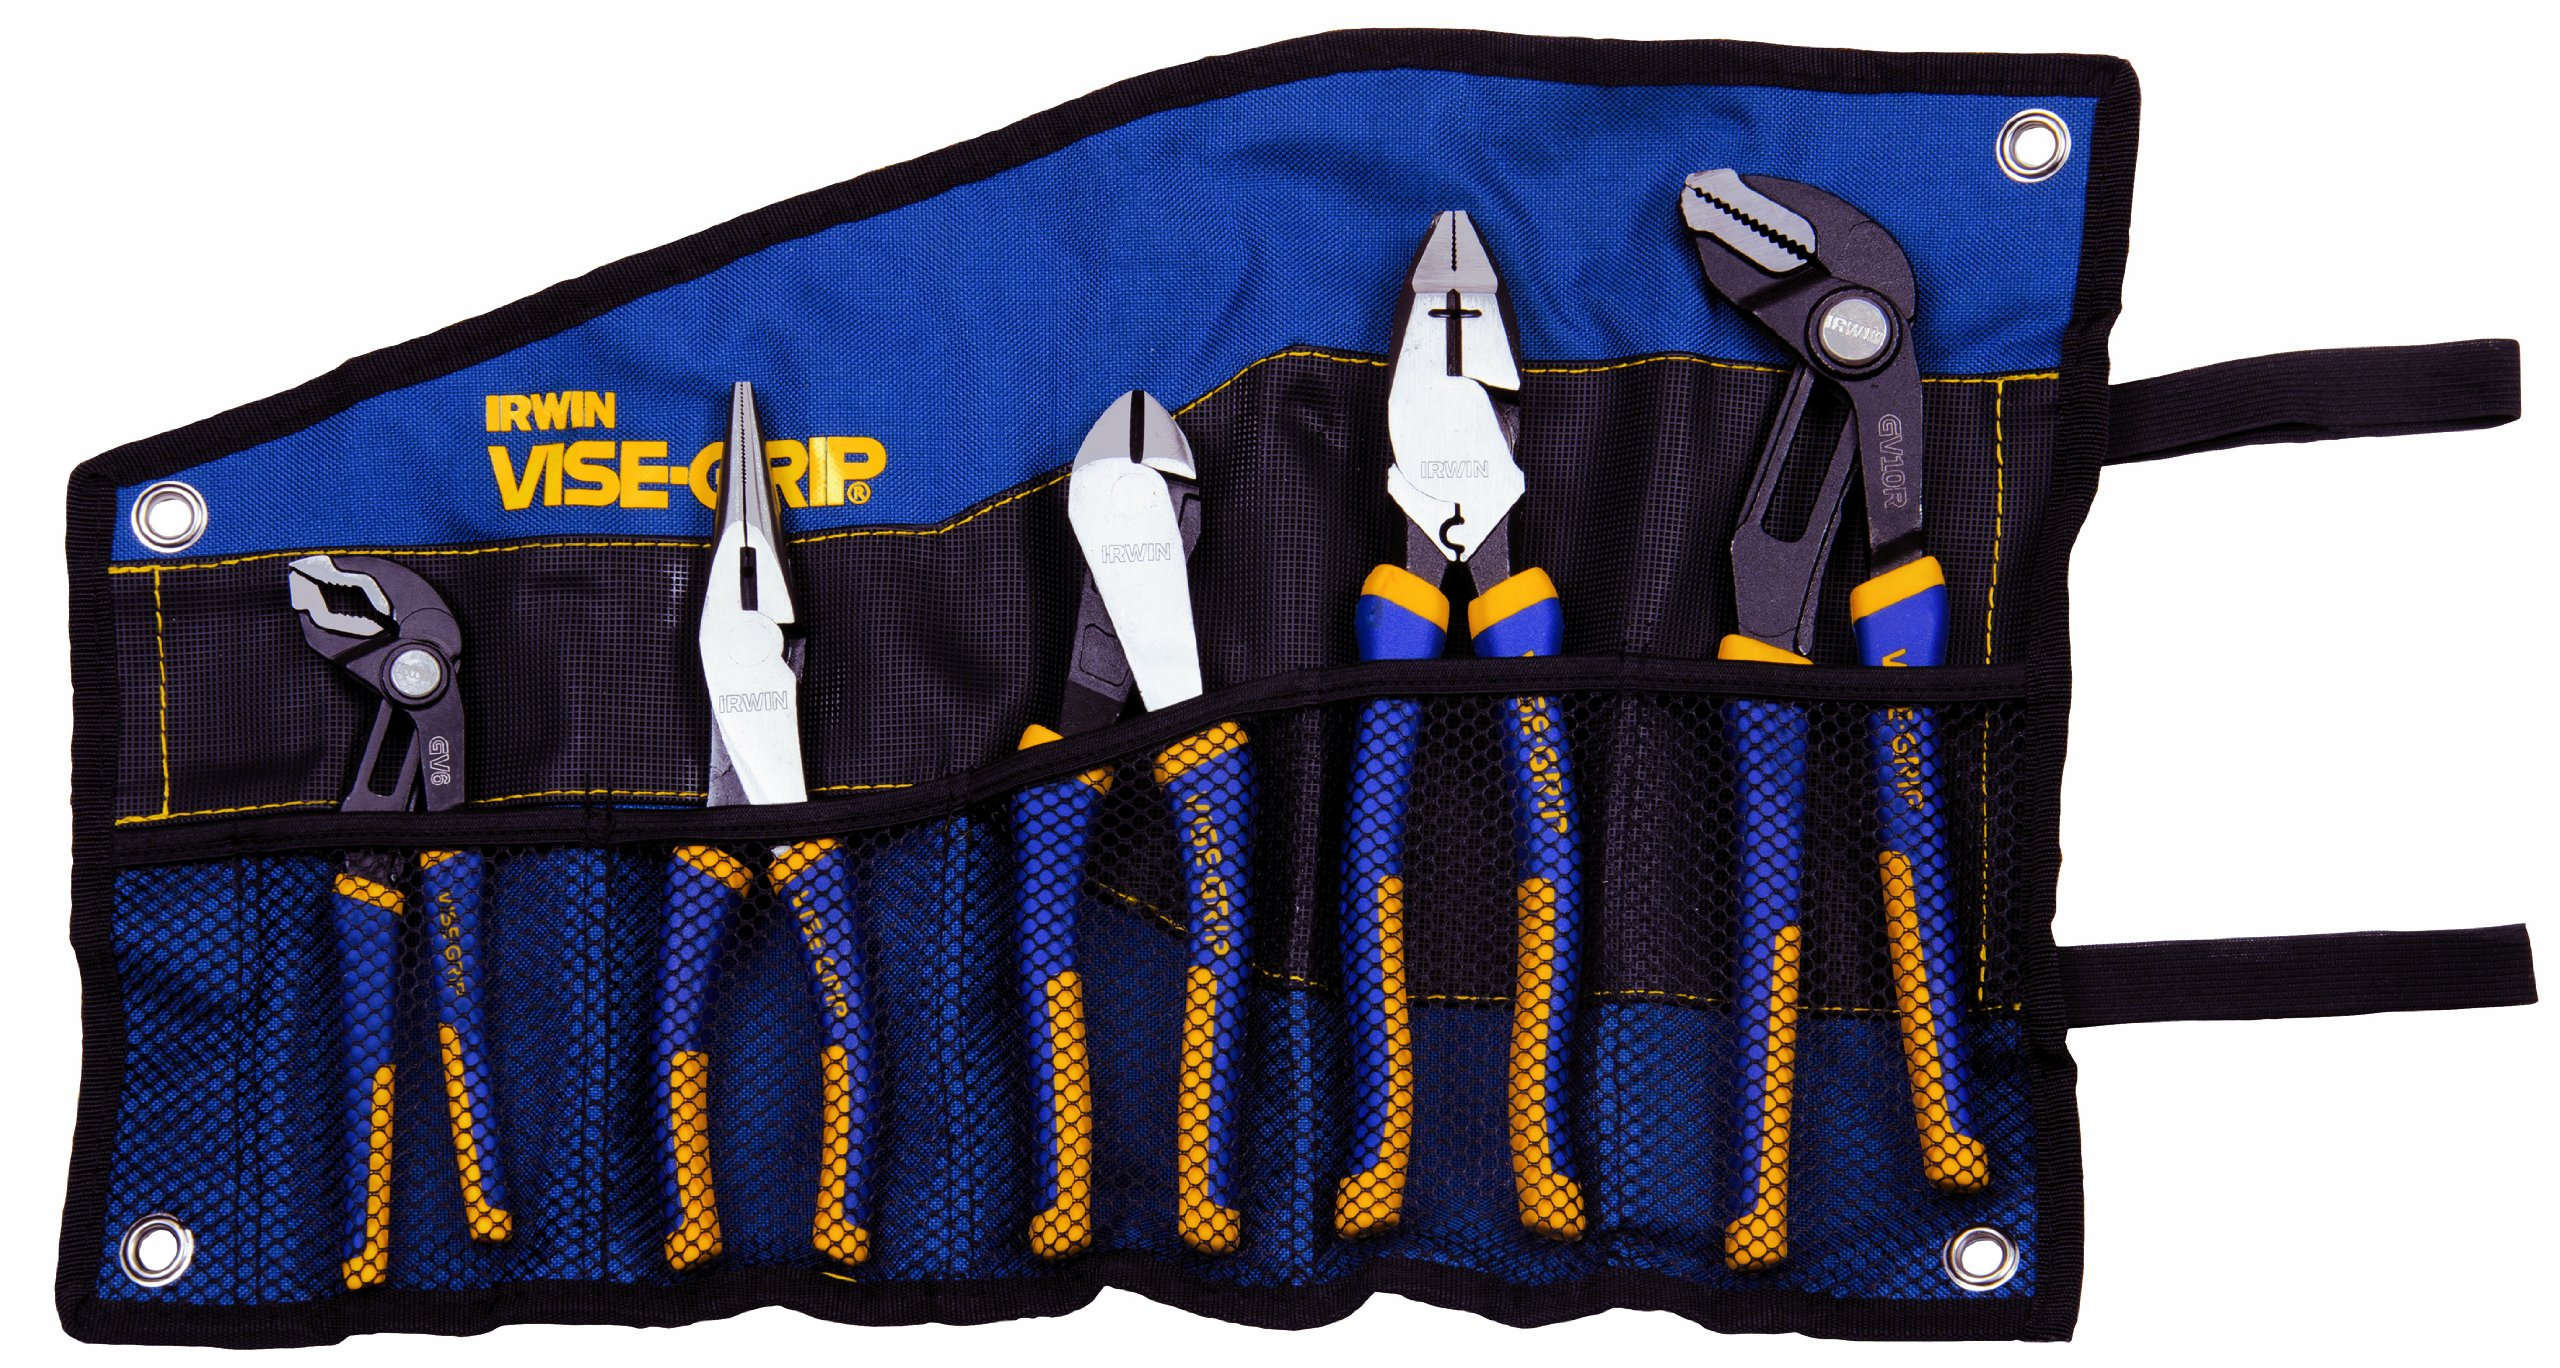 IRWIN VISE-GRIP Pliers Set, 5 Pieces (1802536) by Irwin Tools